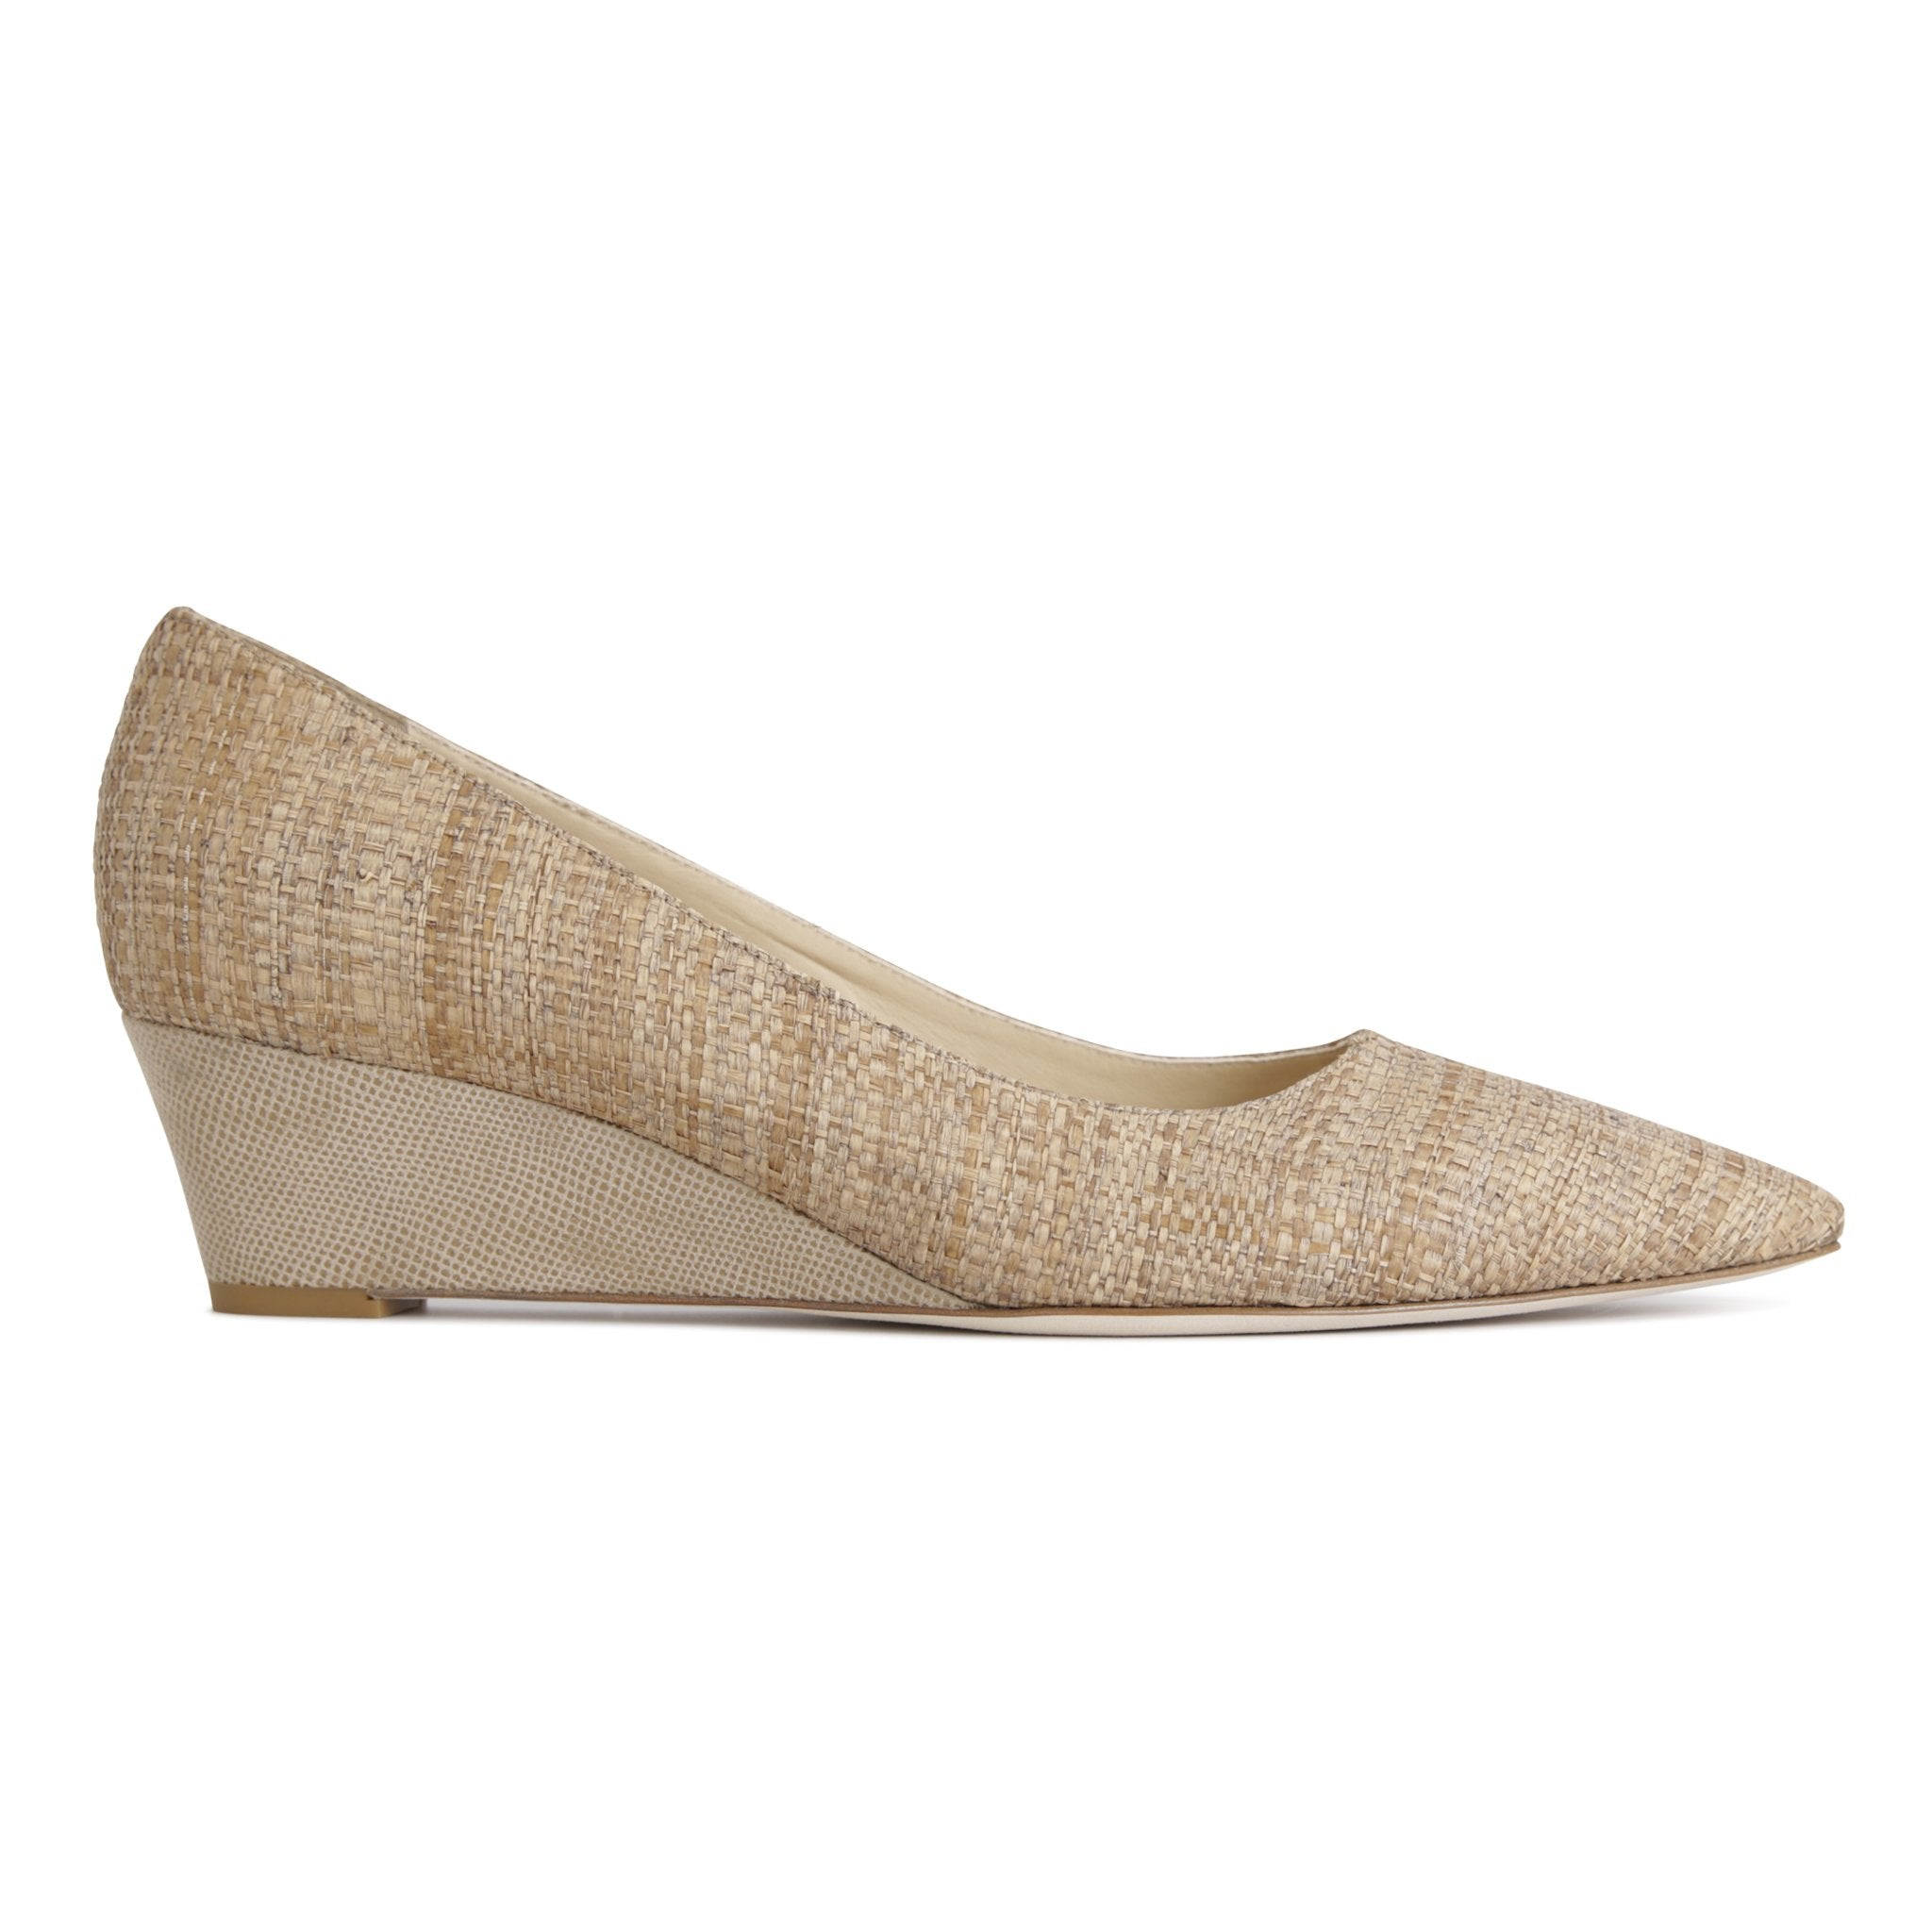 TRENTO - Raffia Natural + Karung Tan, VIAJIYU - Women's Hand Made Sustainable Luxury Shoes. Made in Italy. Made to Order.